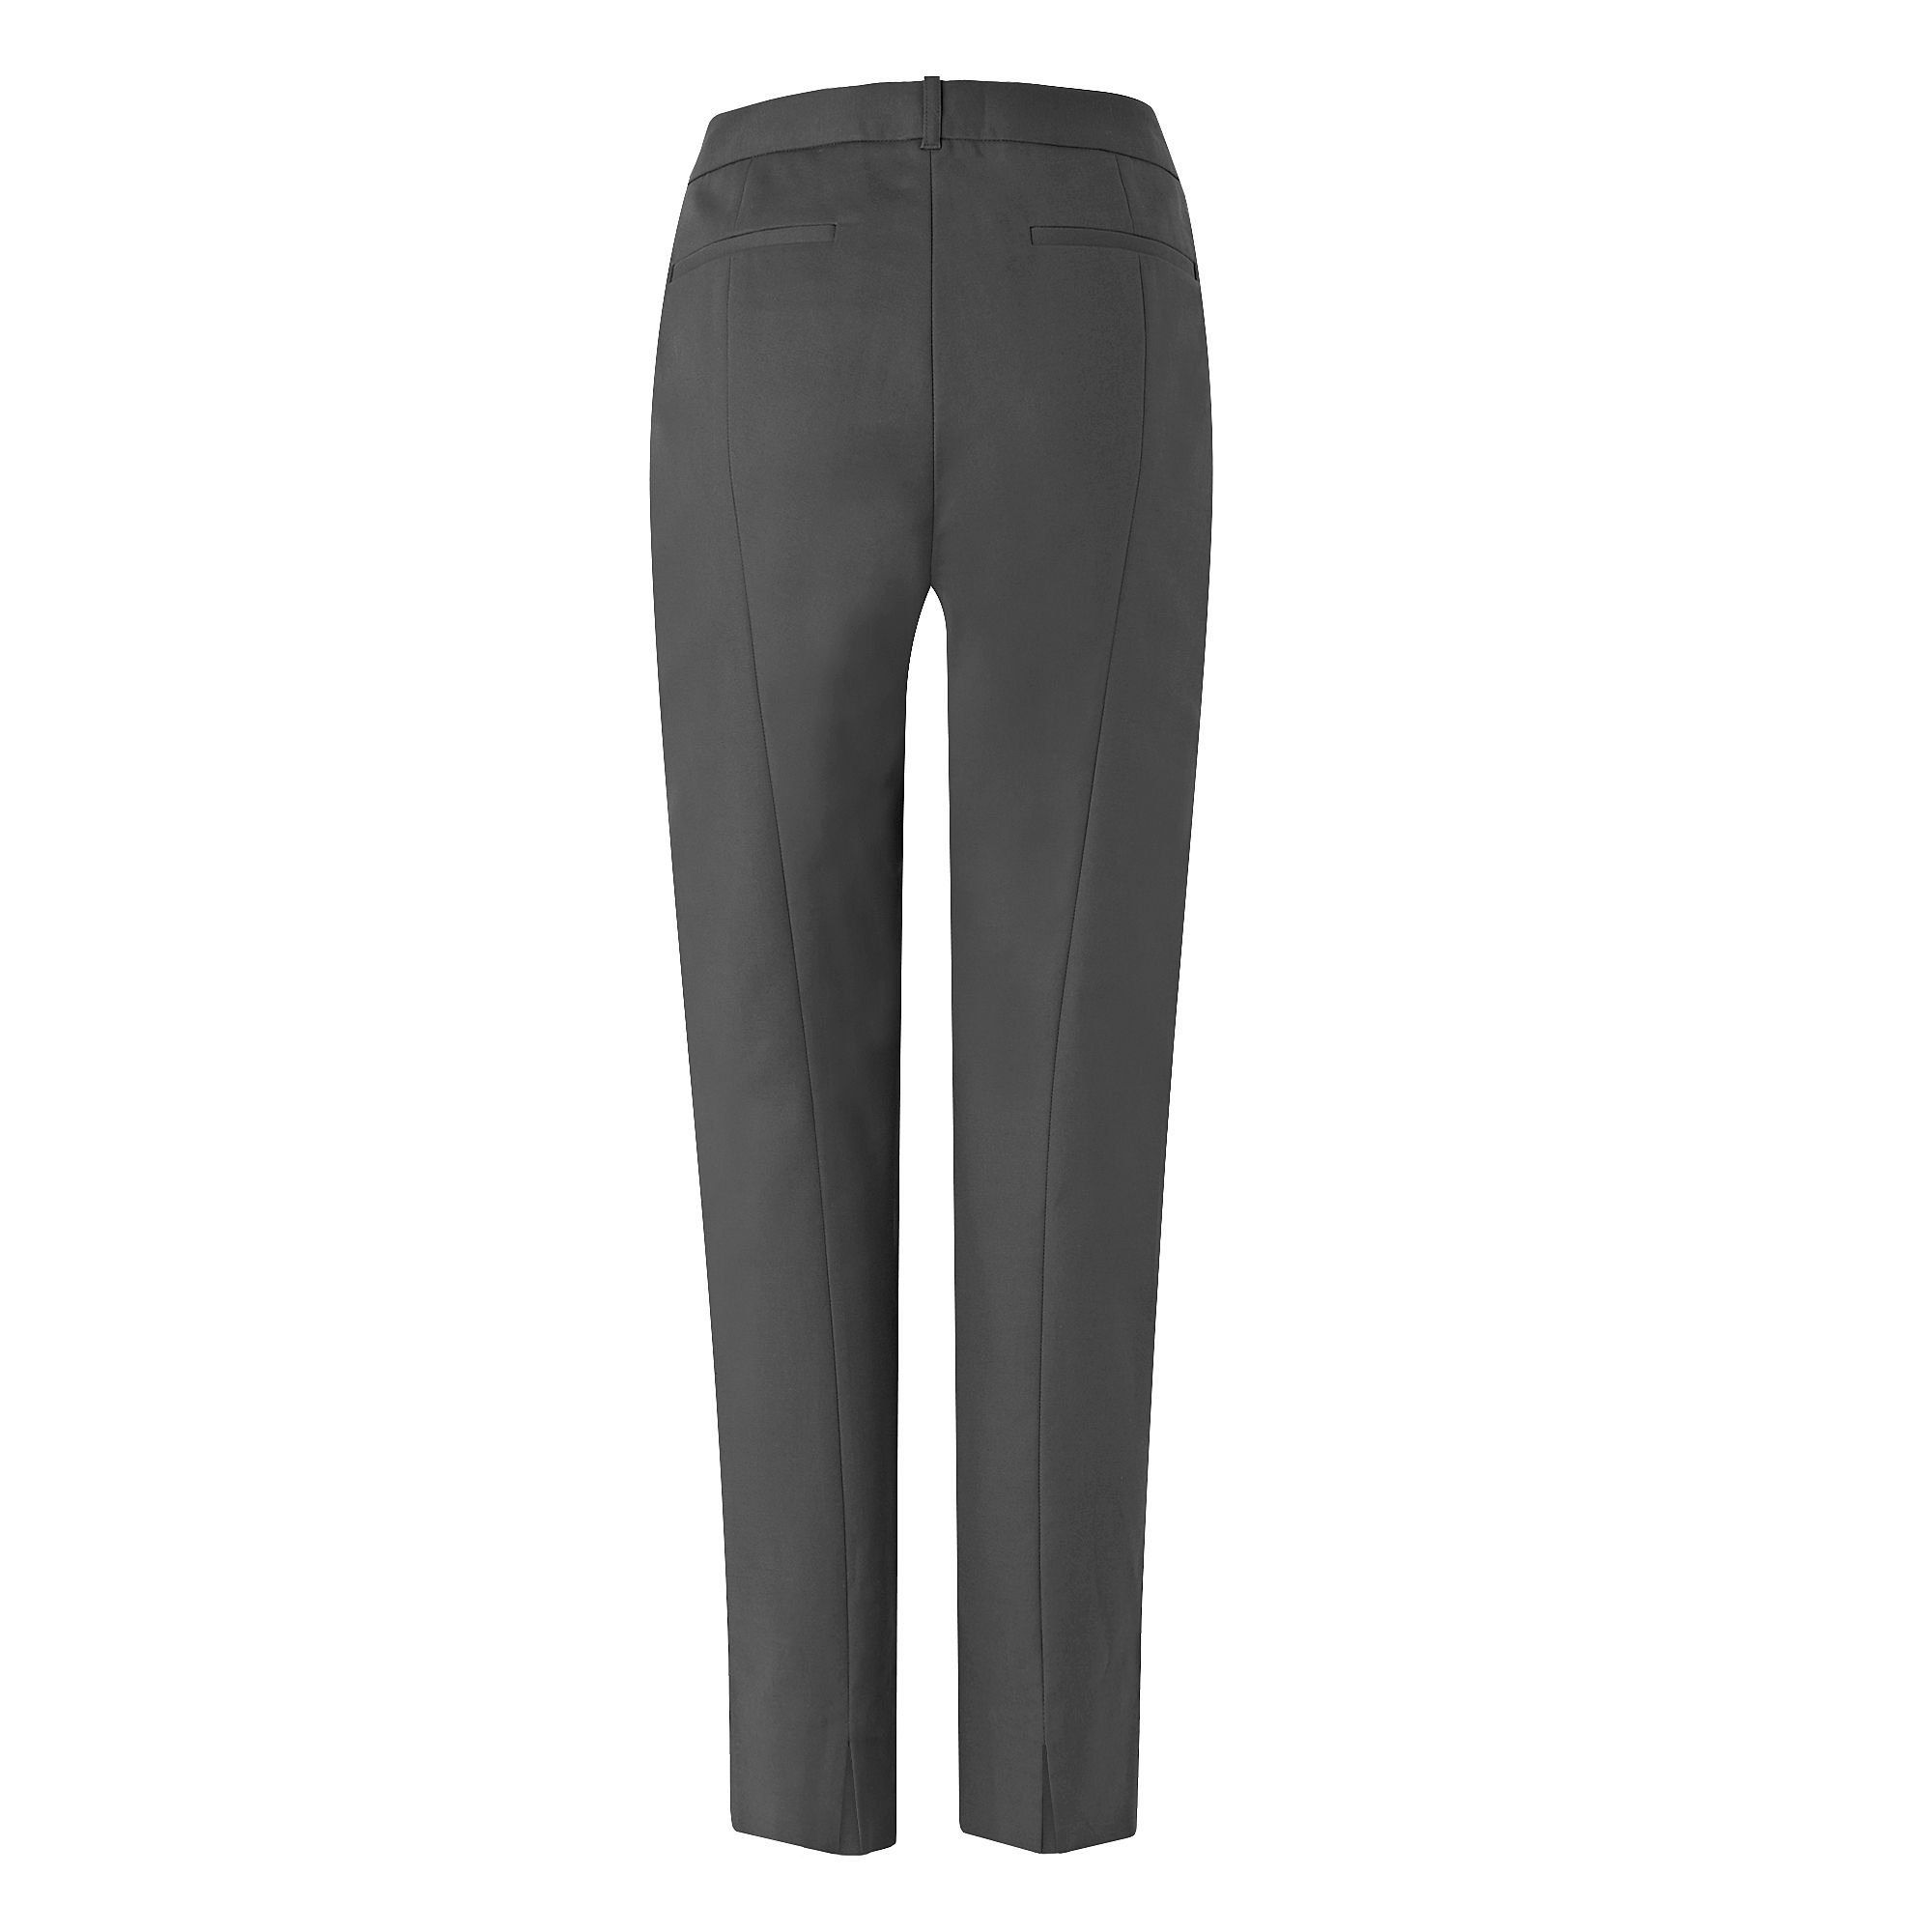 Laris tapered leg trouser